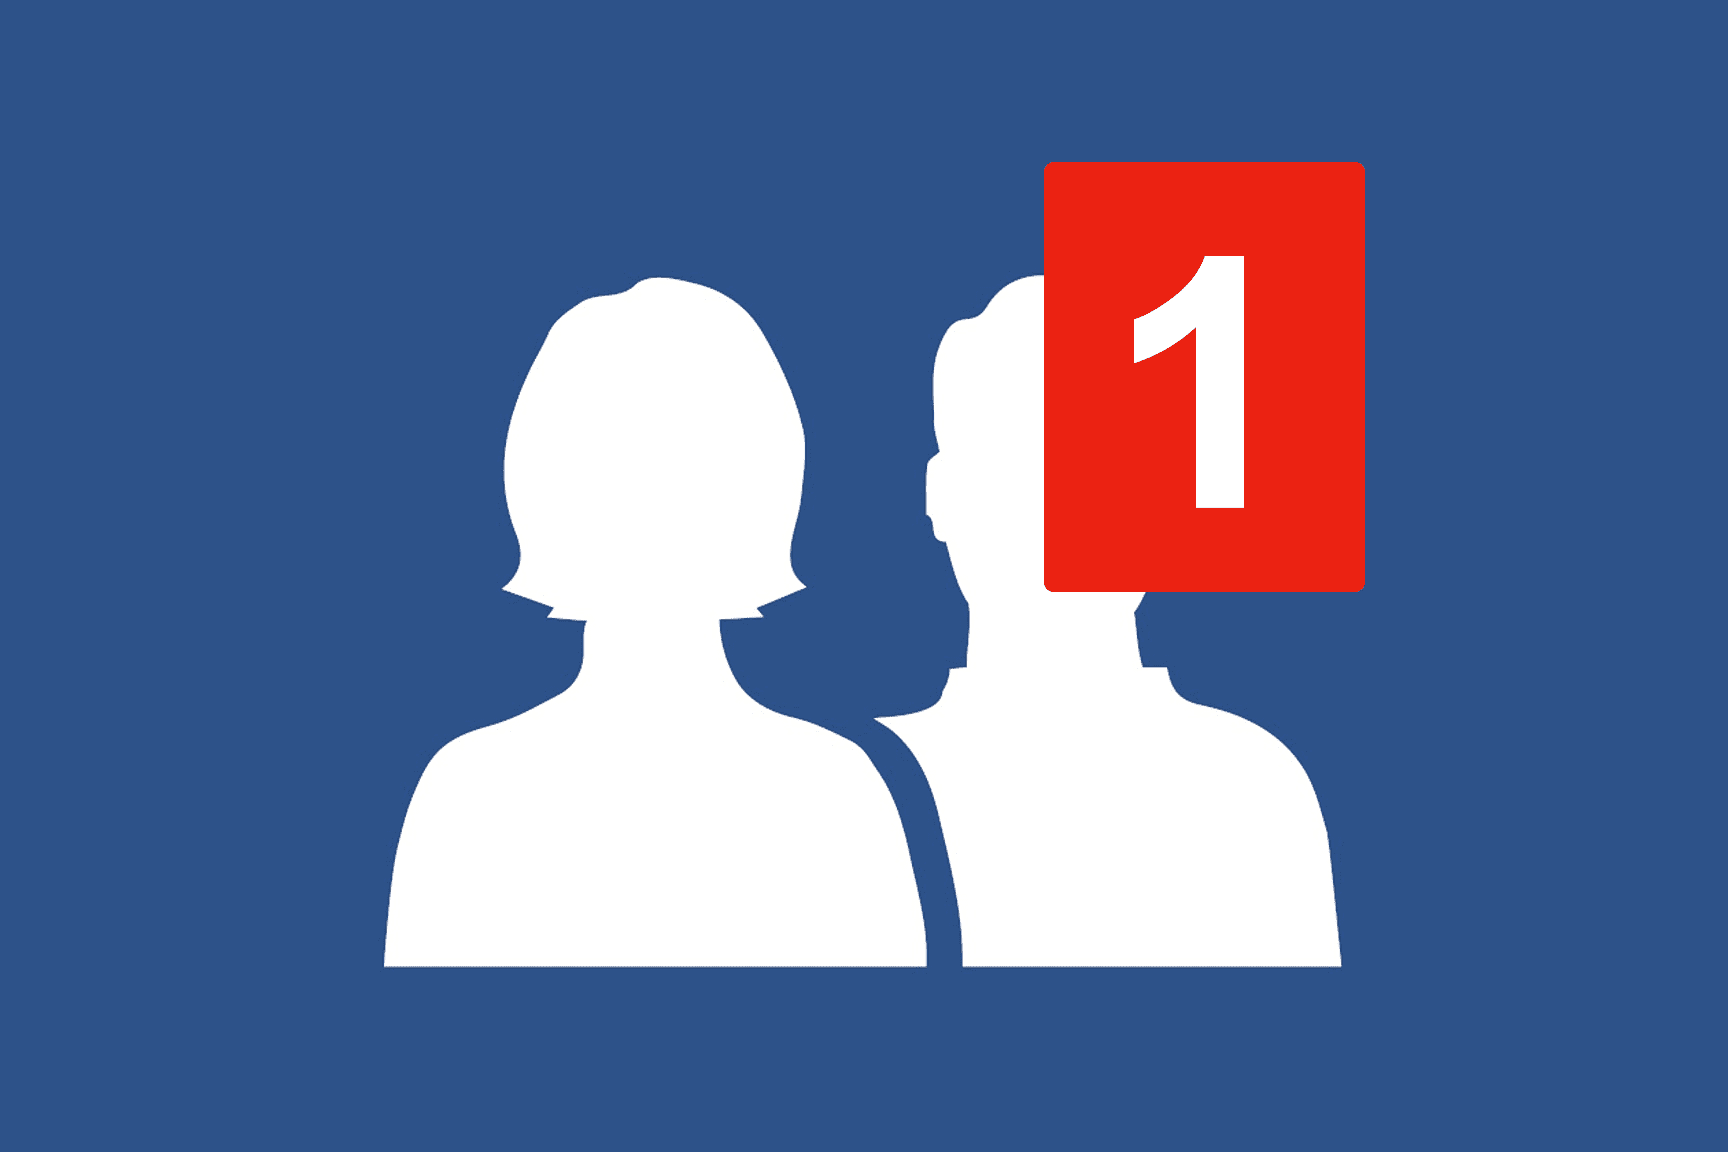 should i add my colleagues or boss on social media? facebook logo